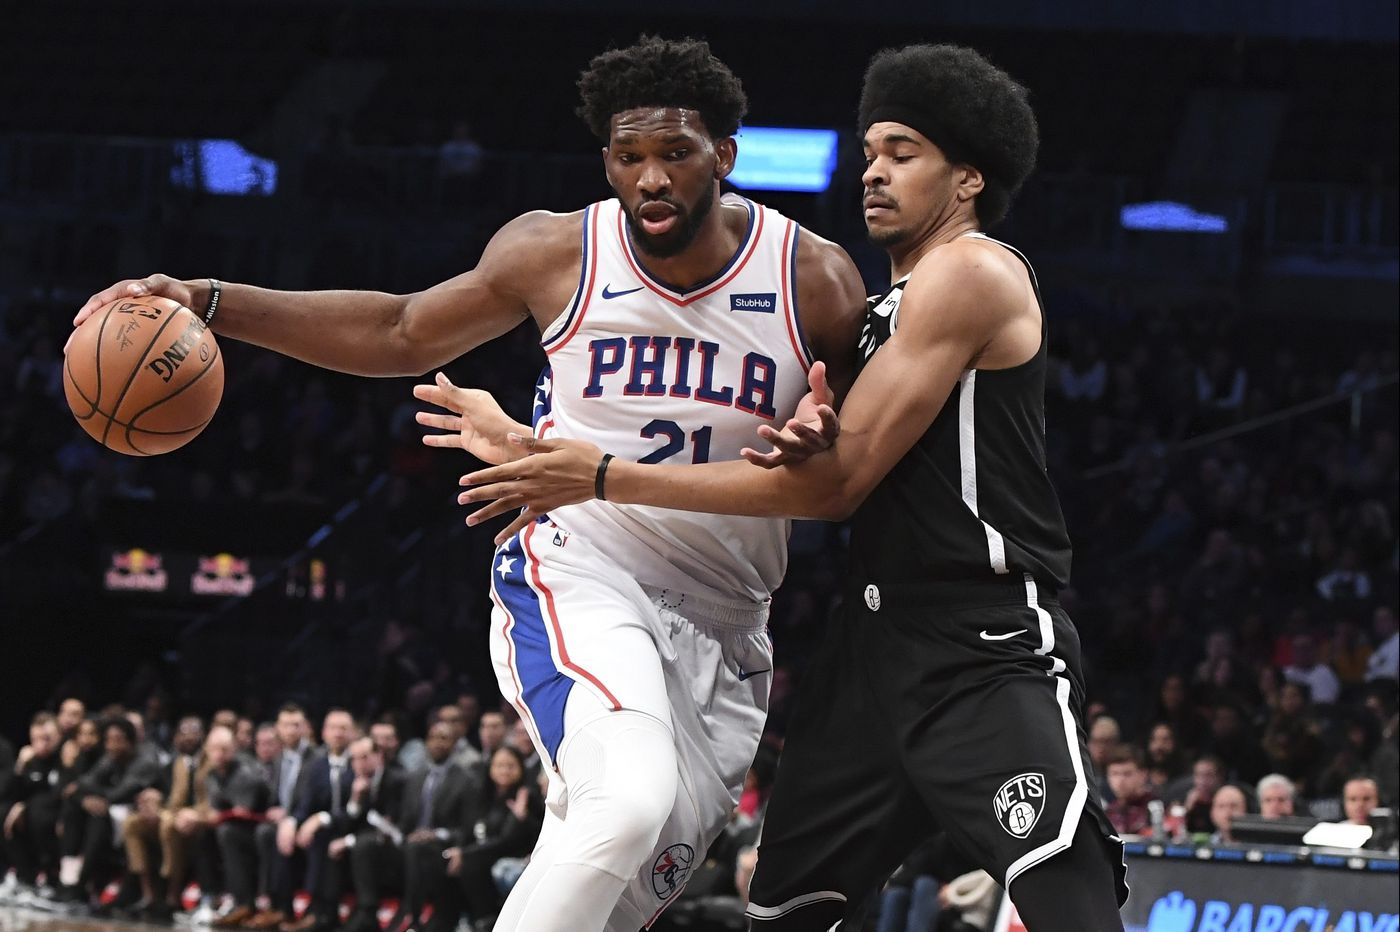 Sixers lose to struggling Nets, continue trend of falling short on road